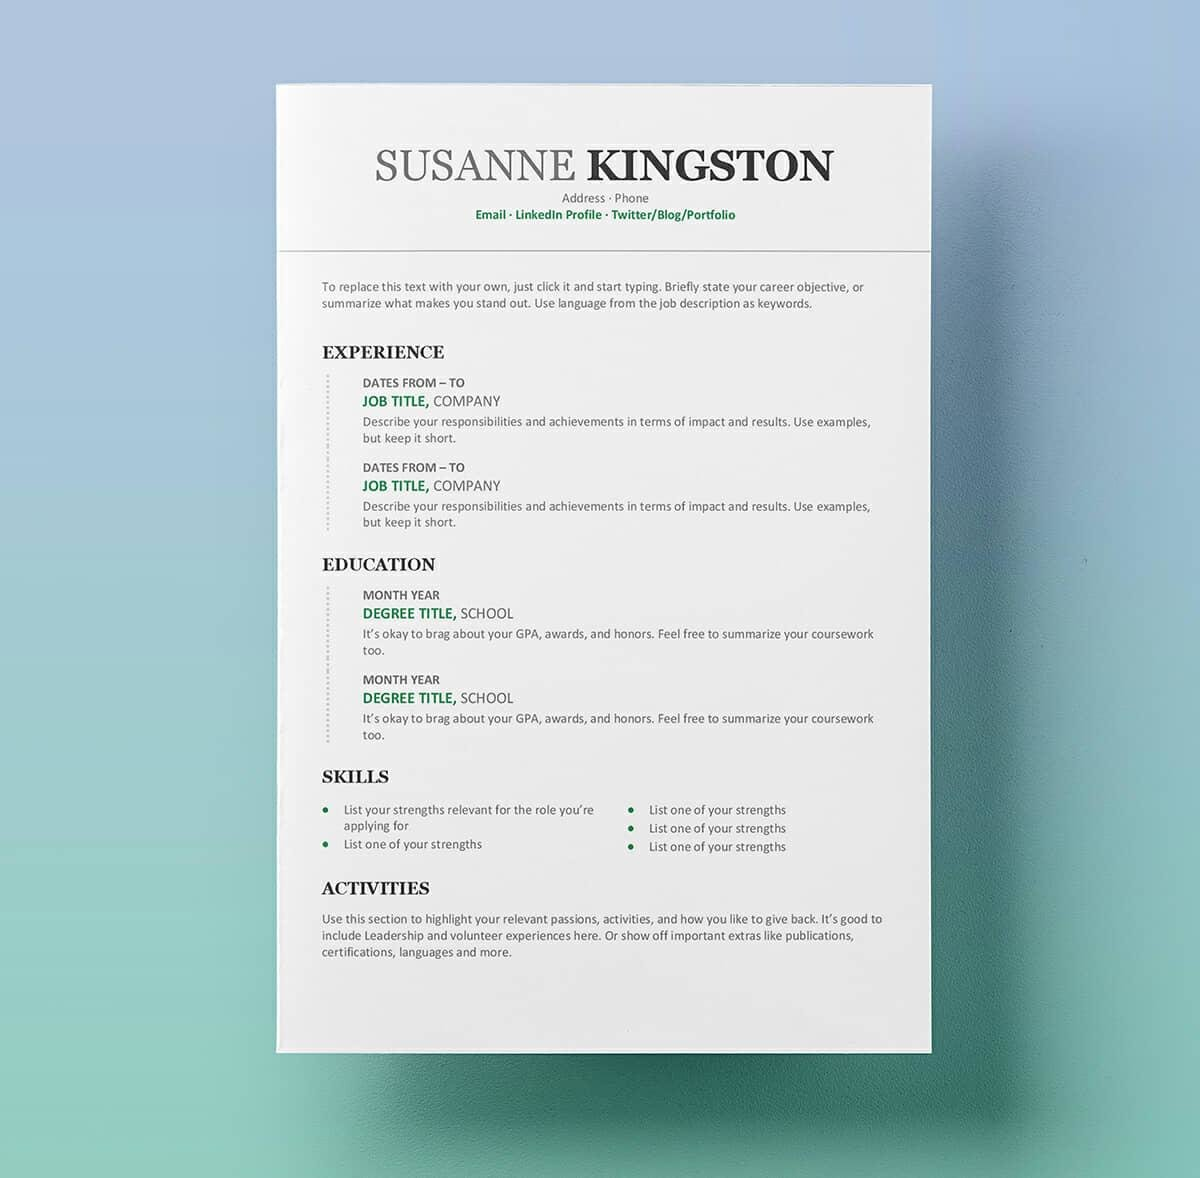 Resume Templates Word 15 Free Cvresume Formats To Download - Template-resume-word